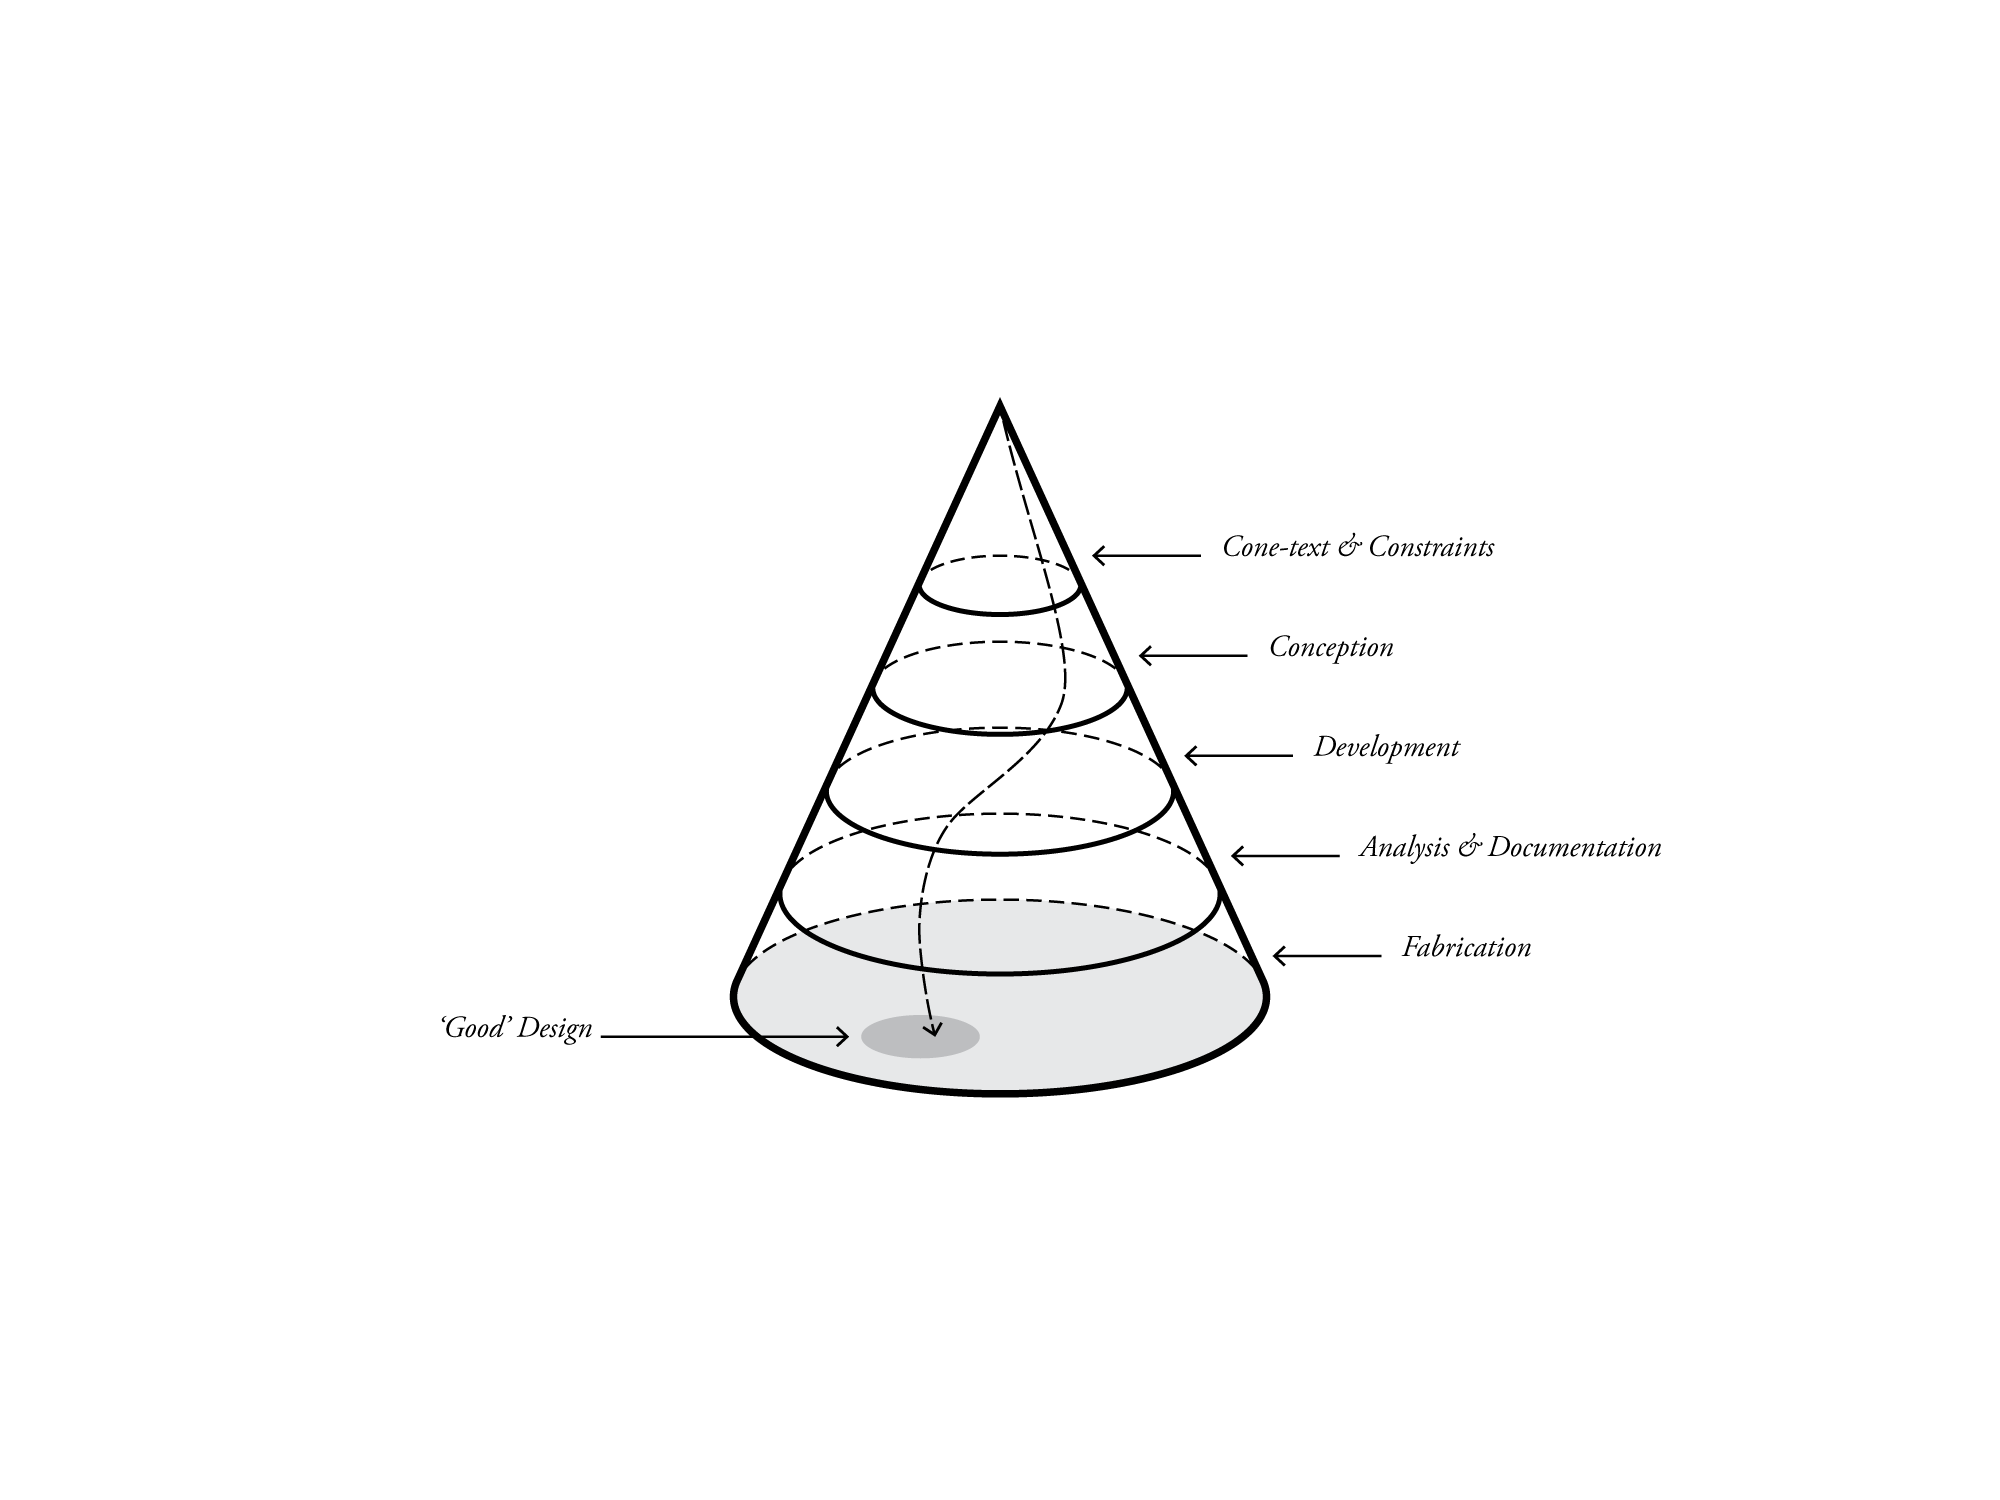 images/design-space-cone.png